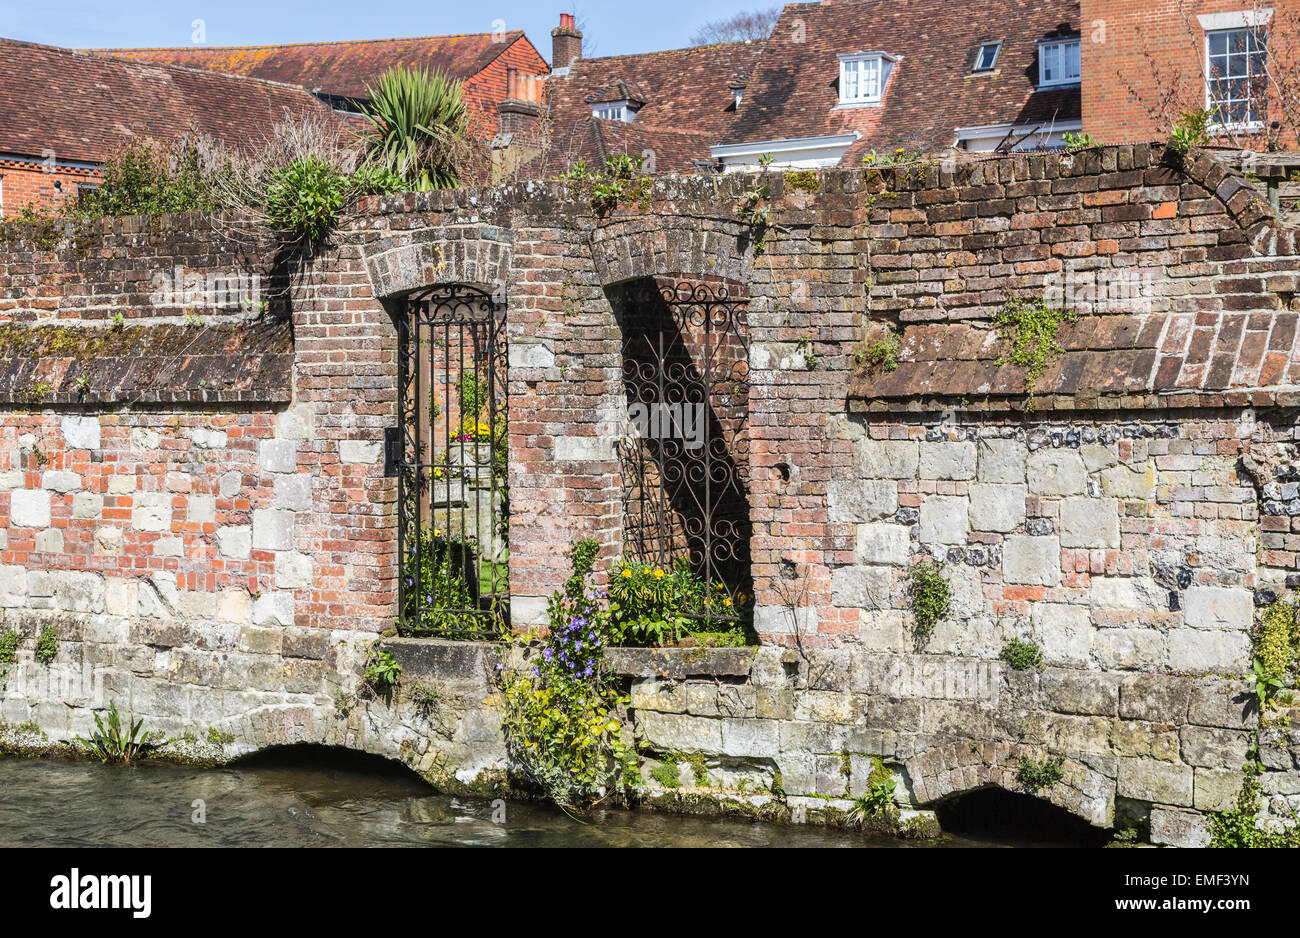 Wrought iron gates in gateways in an old brick wall fronting the River Itchen, Winchester, Hampshire, UK - Stock Image